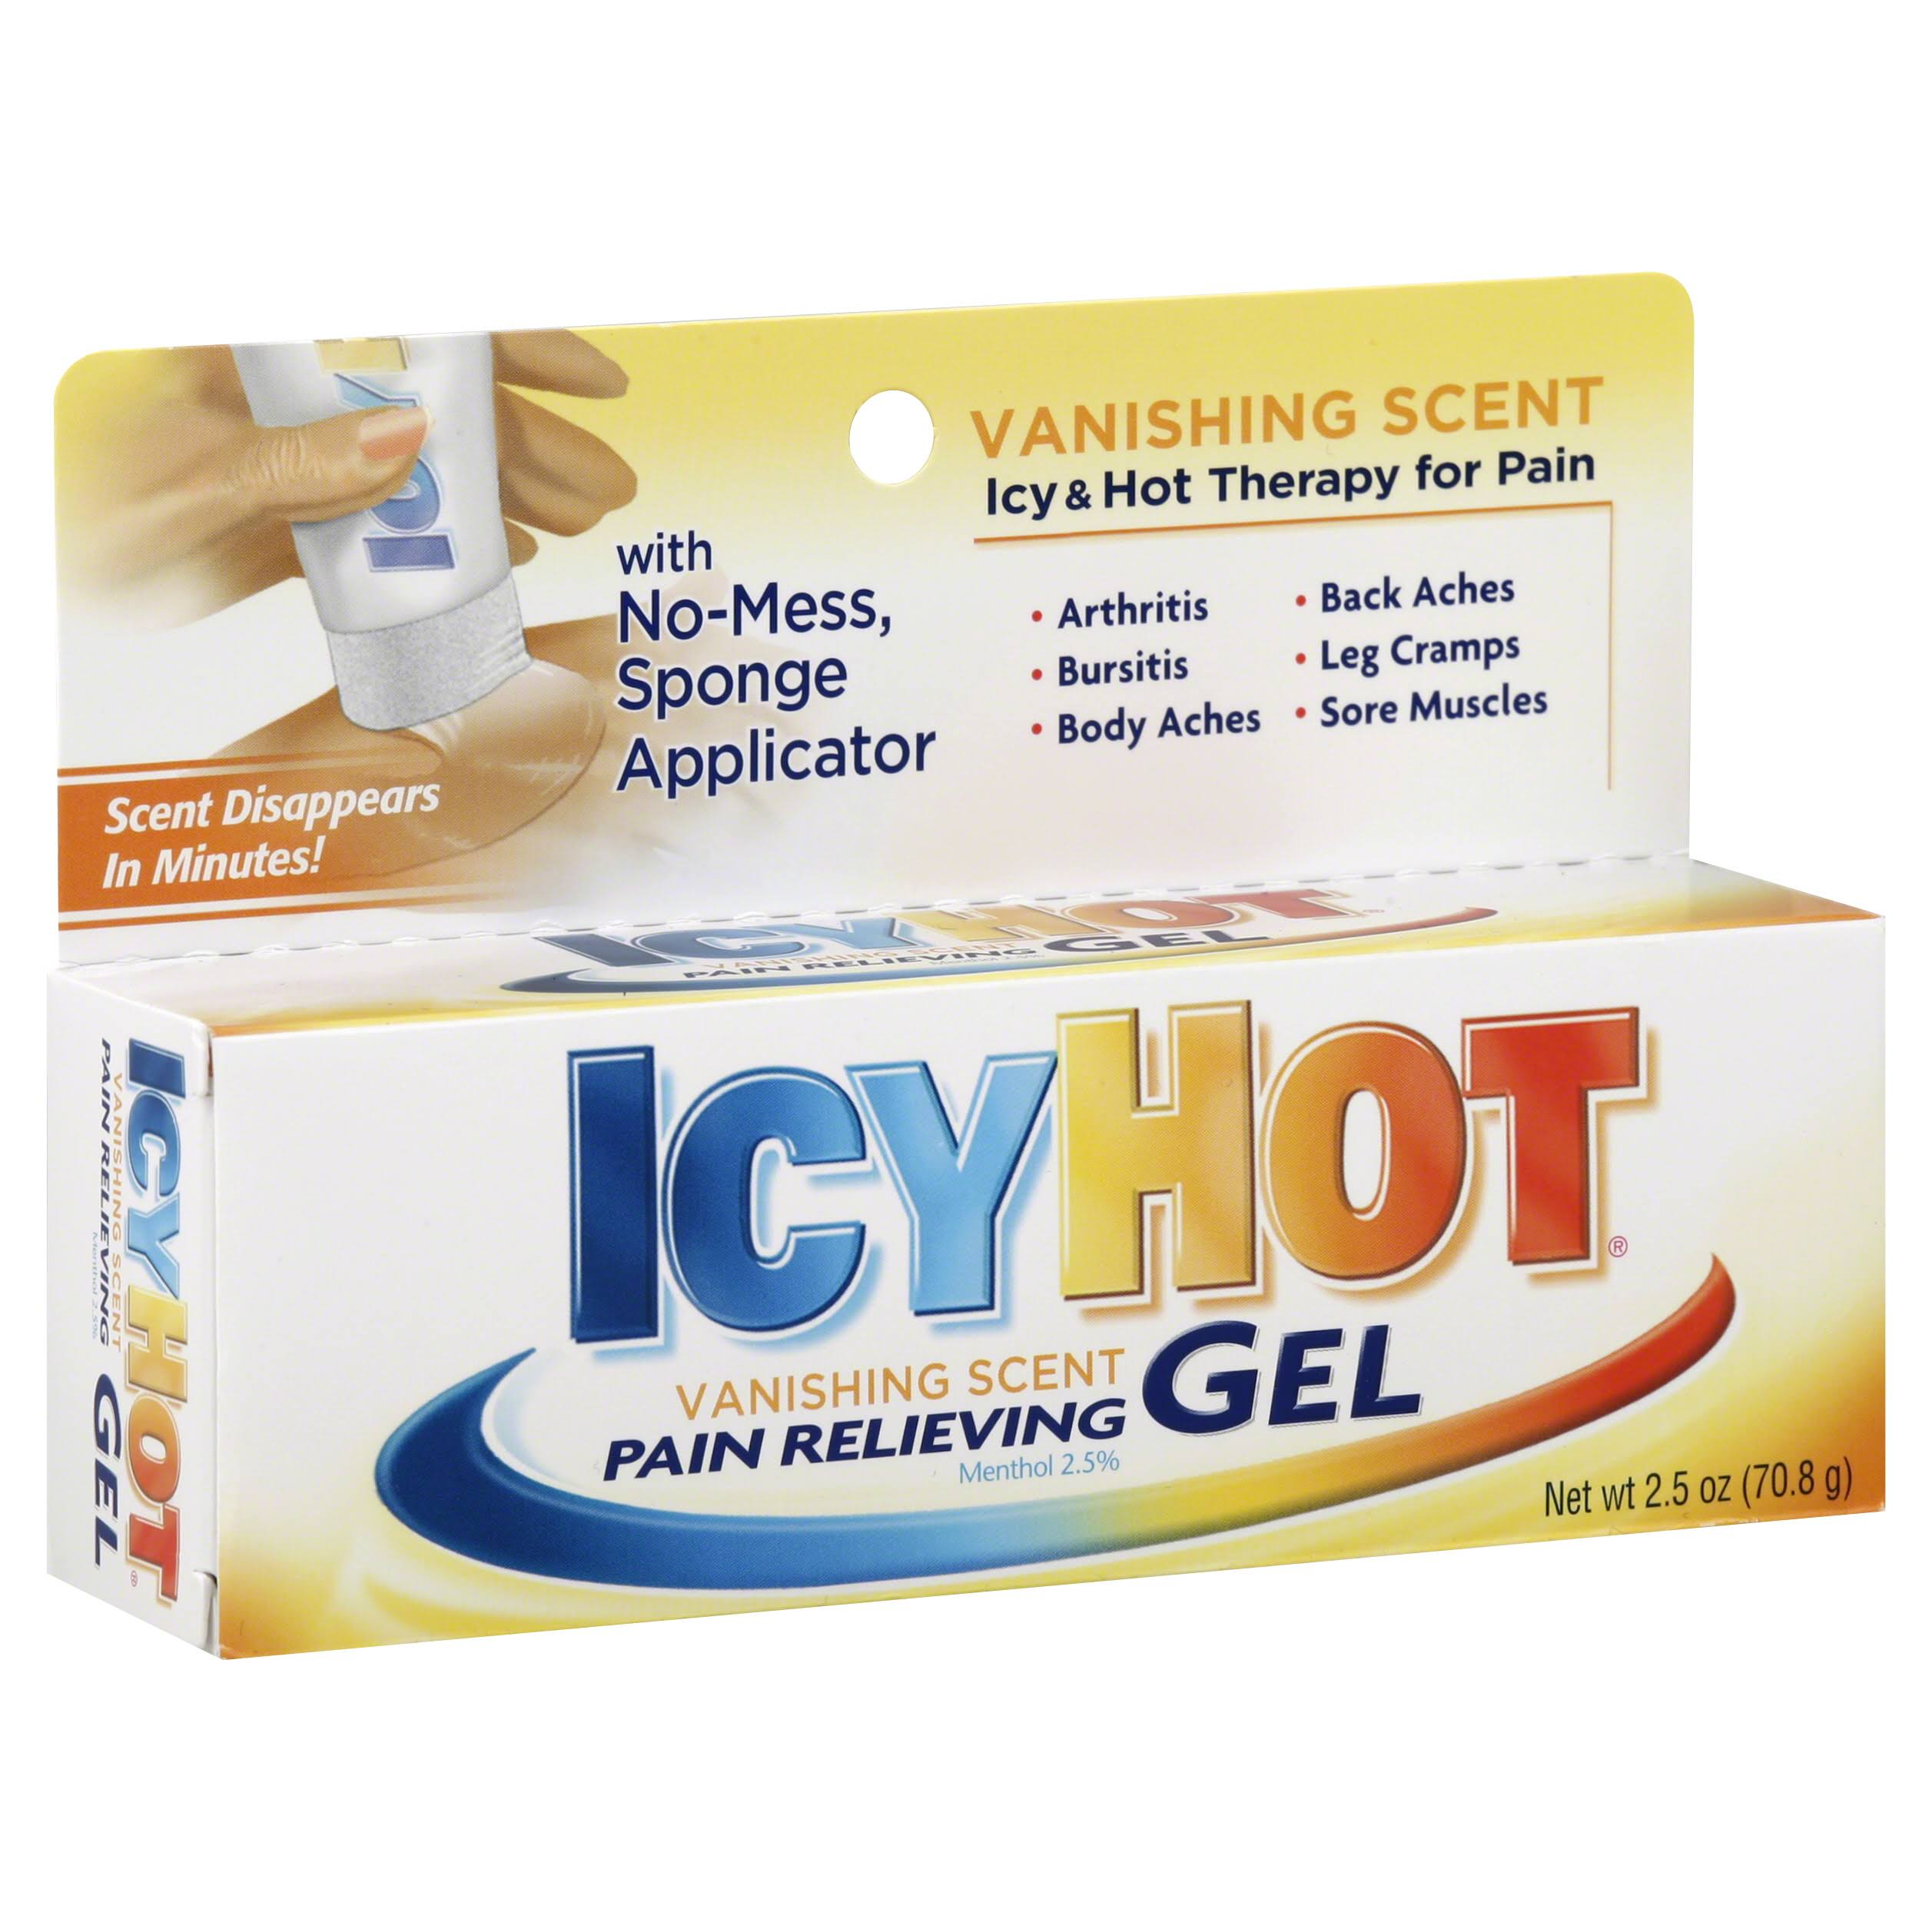 Icy Hot Vanishing Scent Pain Relieving Gel - 2.5oz